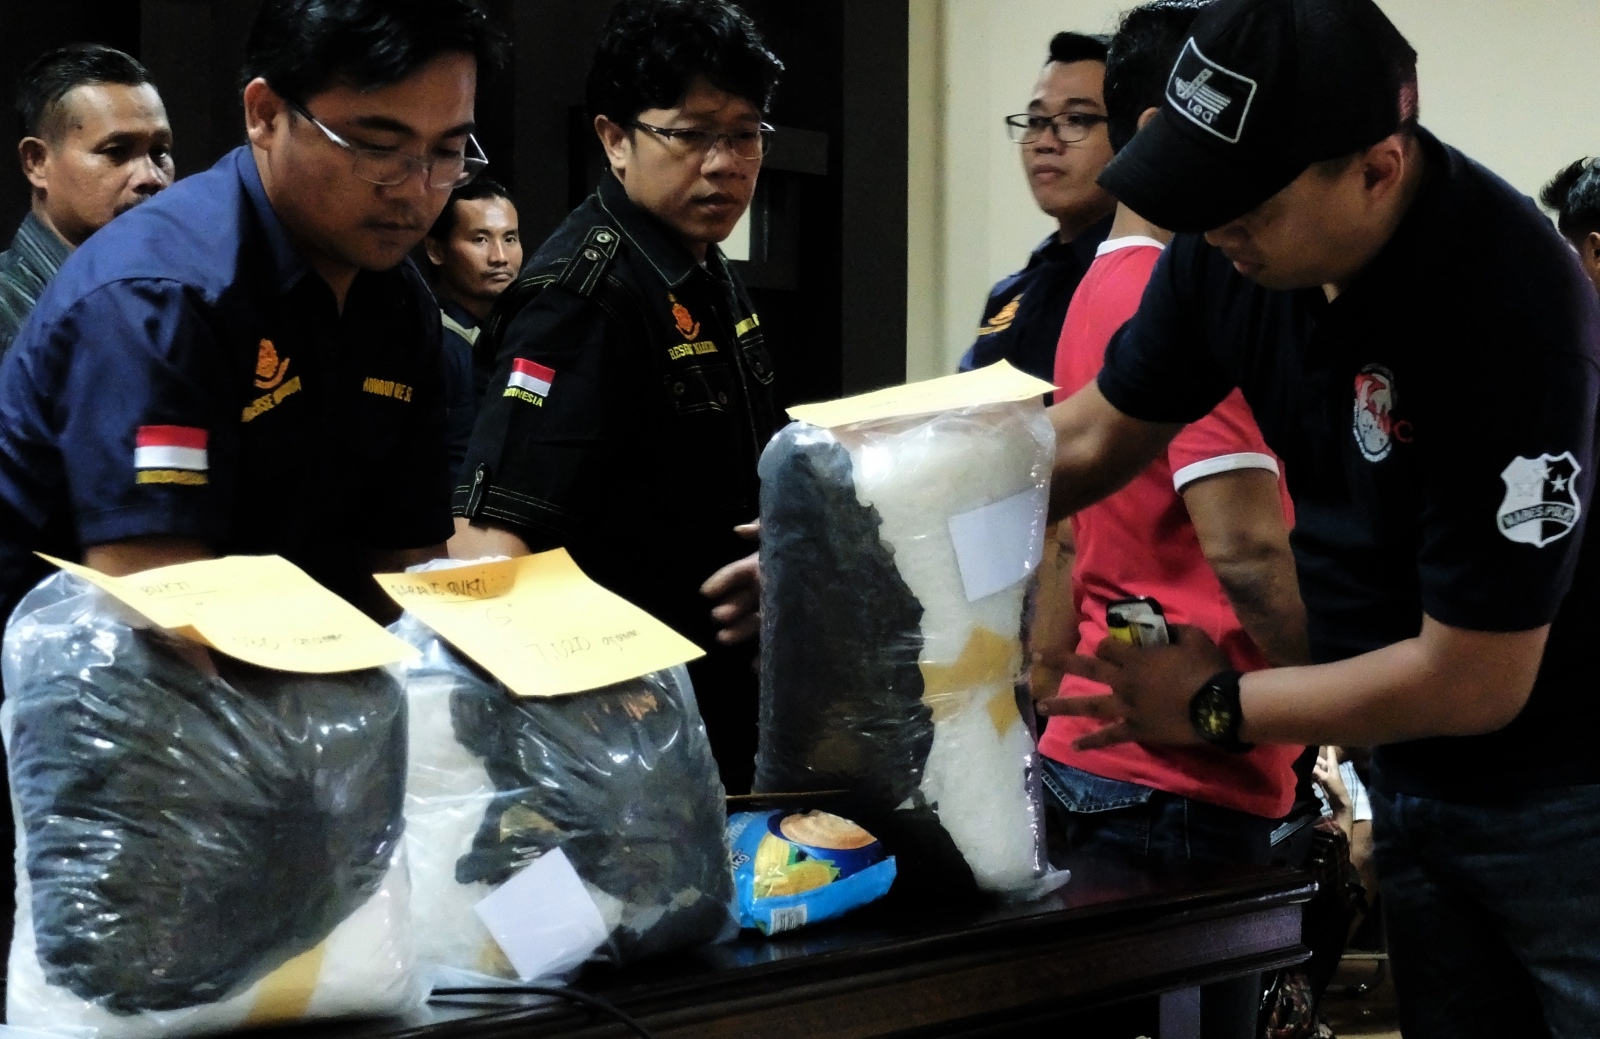 crystal meth seized in indonesia